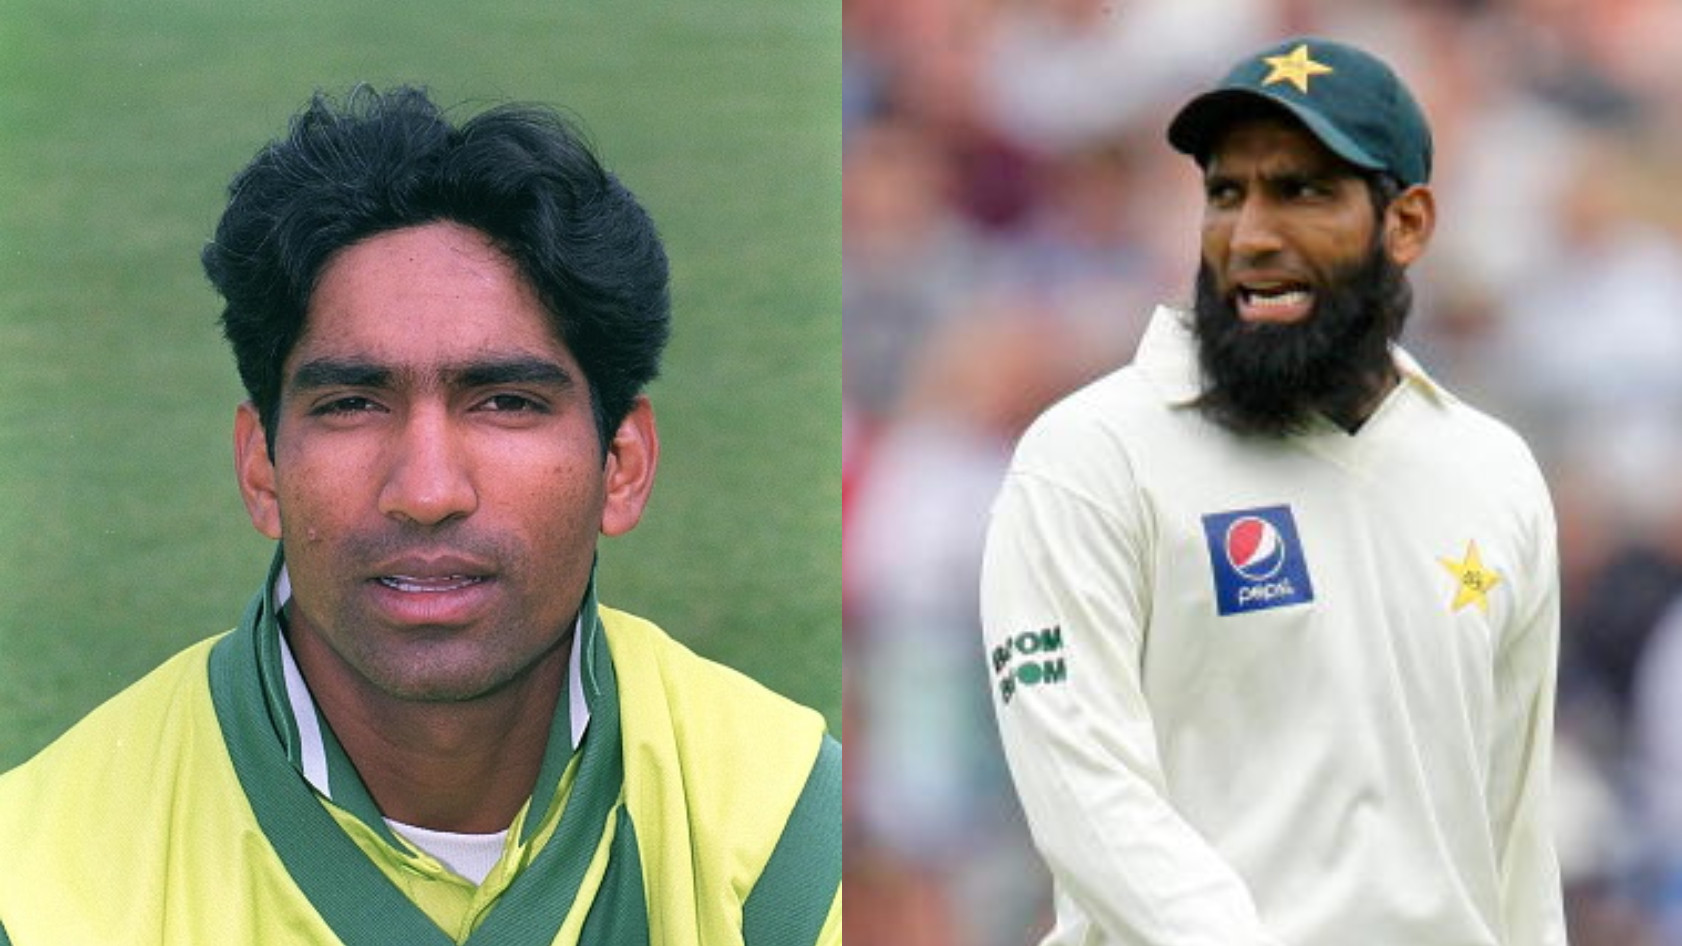 Mohammad Yousuf credits his conversion to Islam for his brilliant performance after 2006